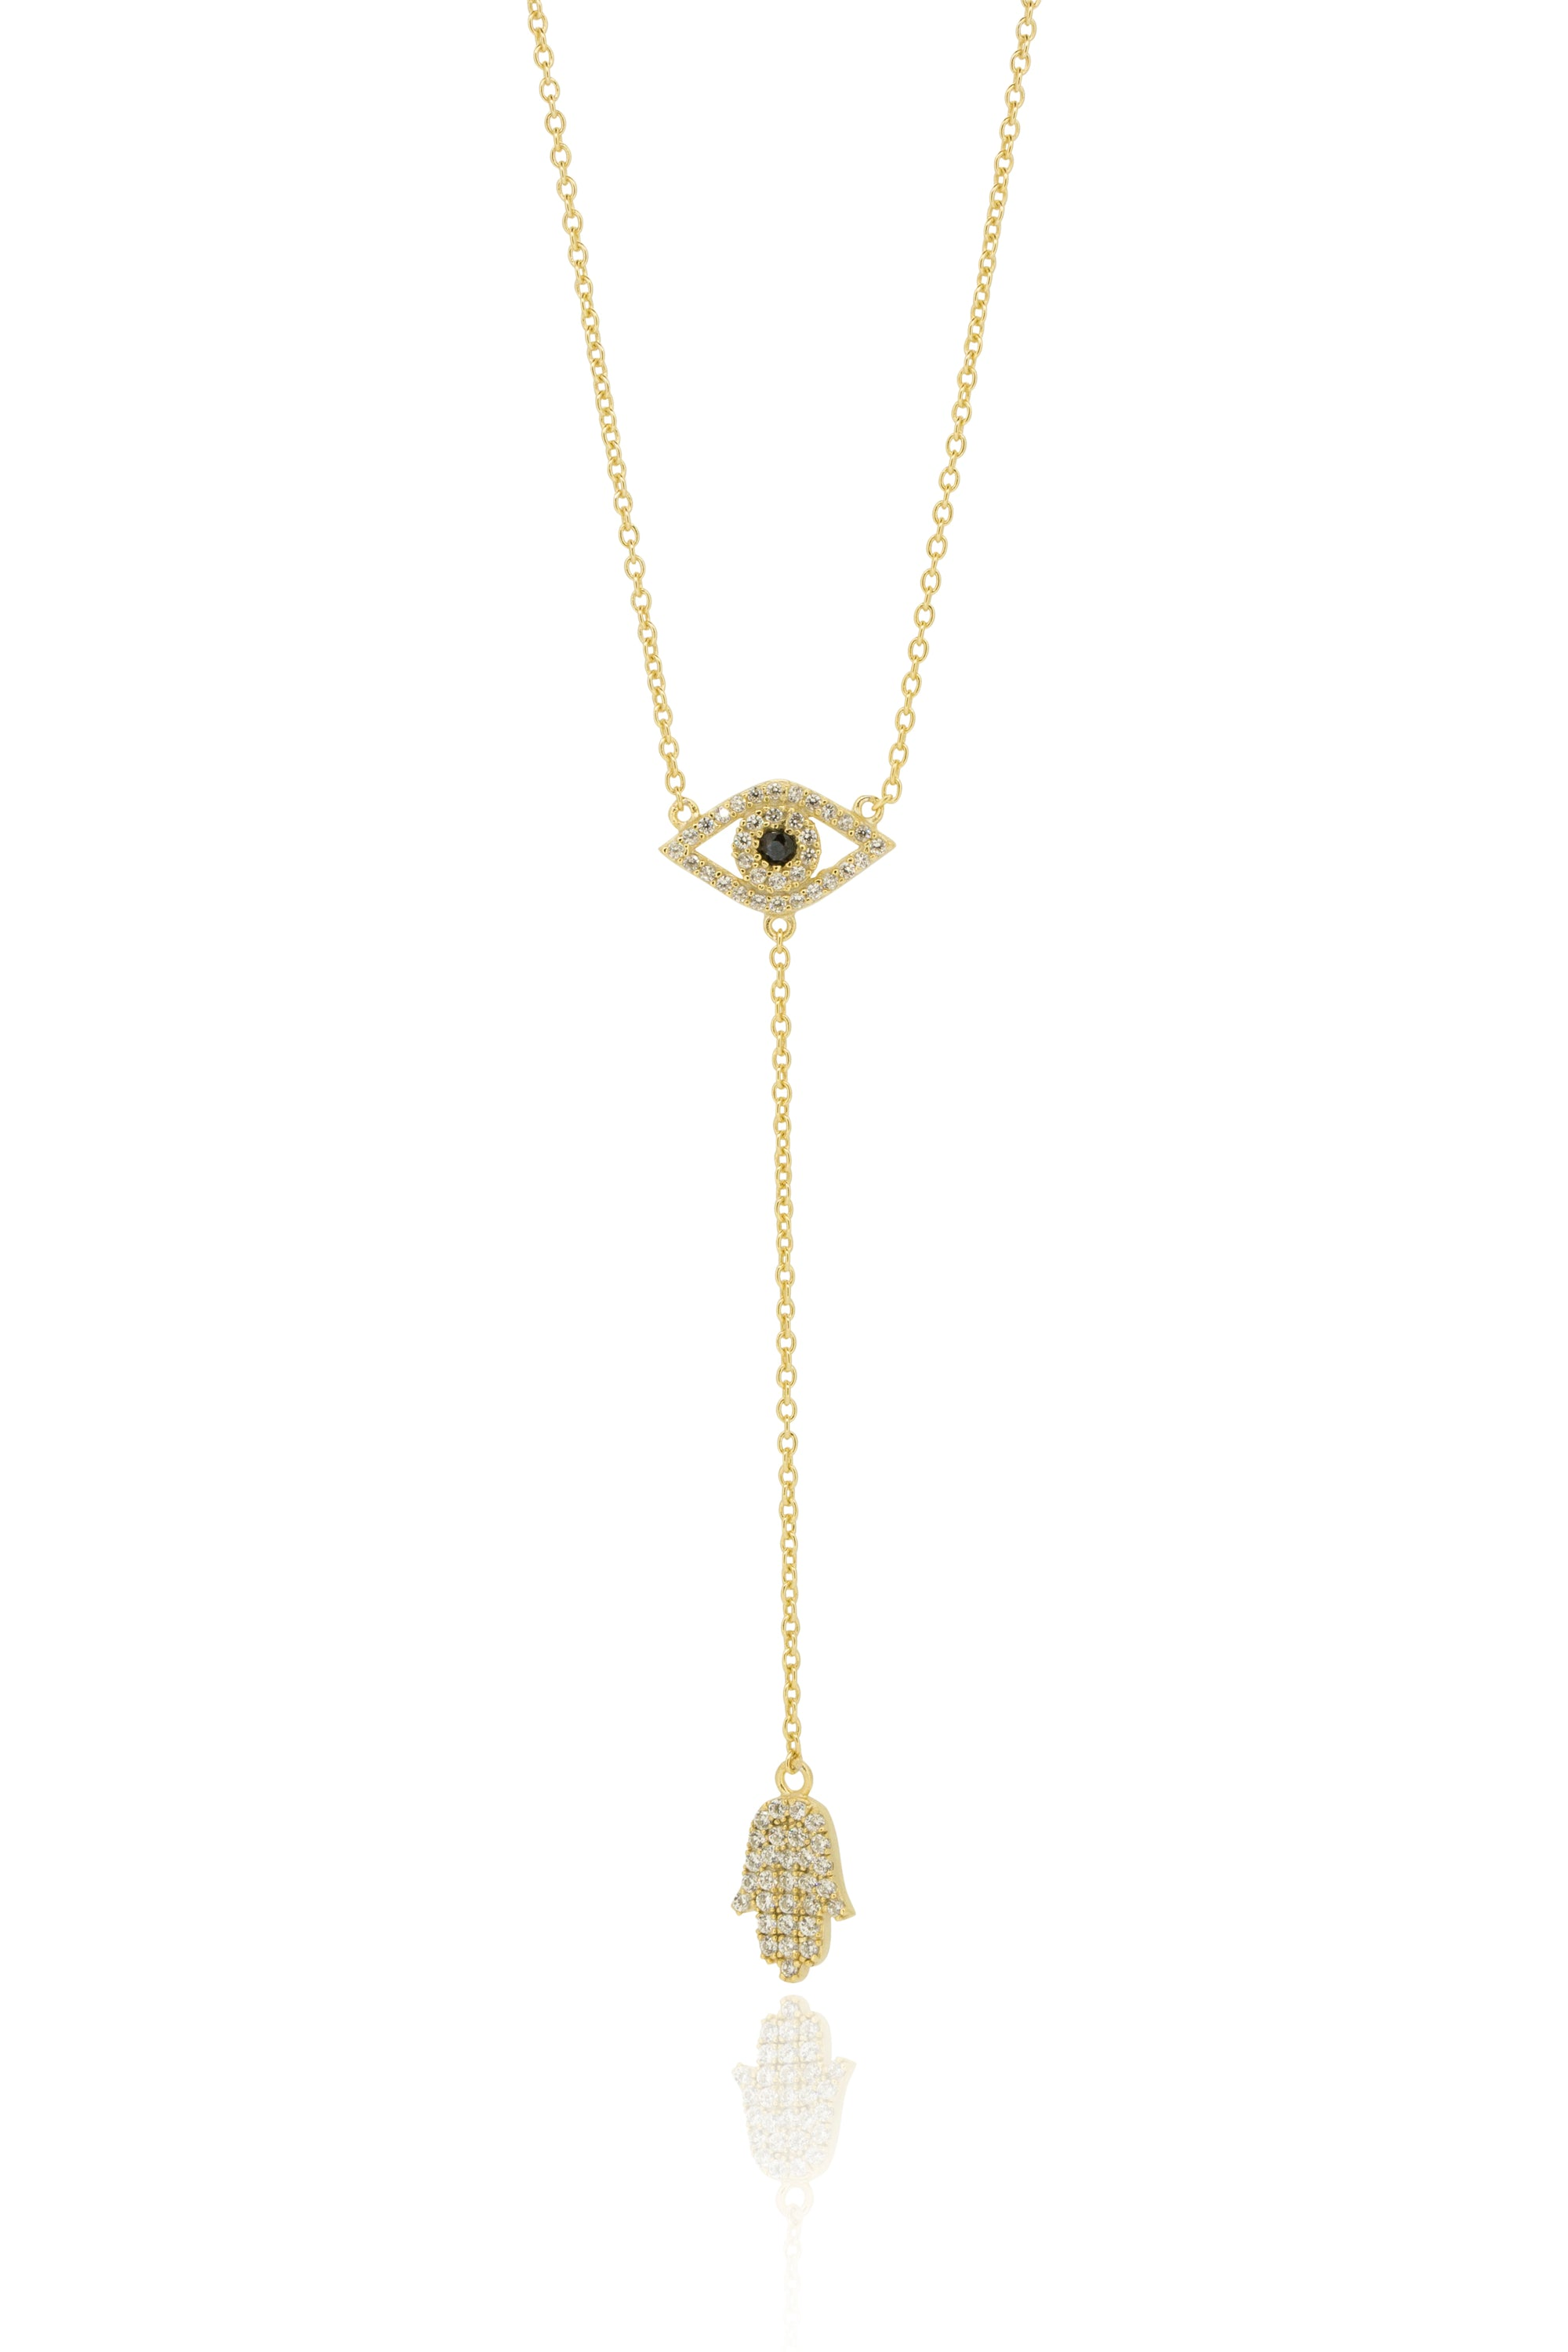 Eye and hand protection and good luck drop lariat style necklace